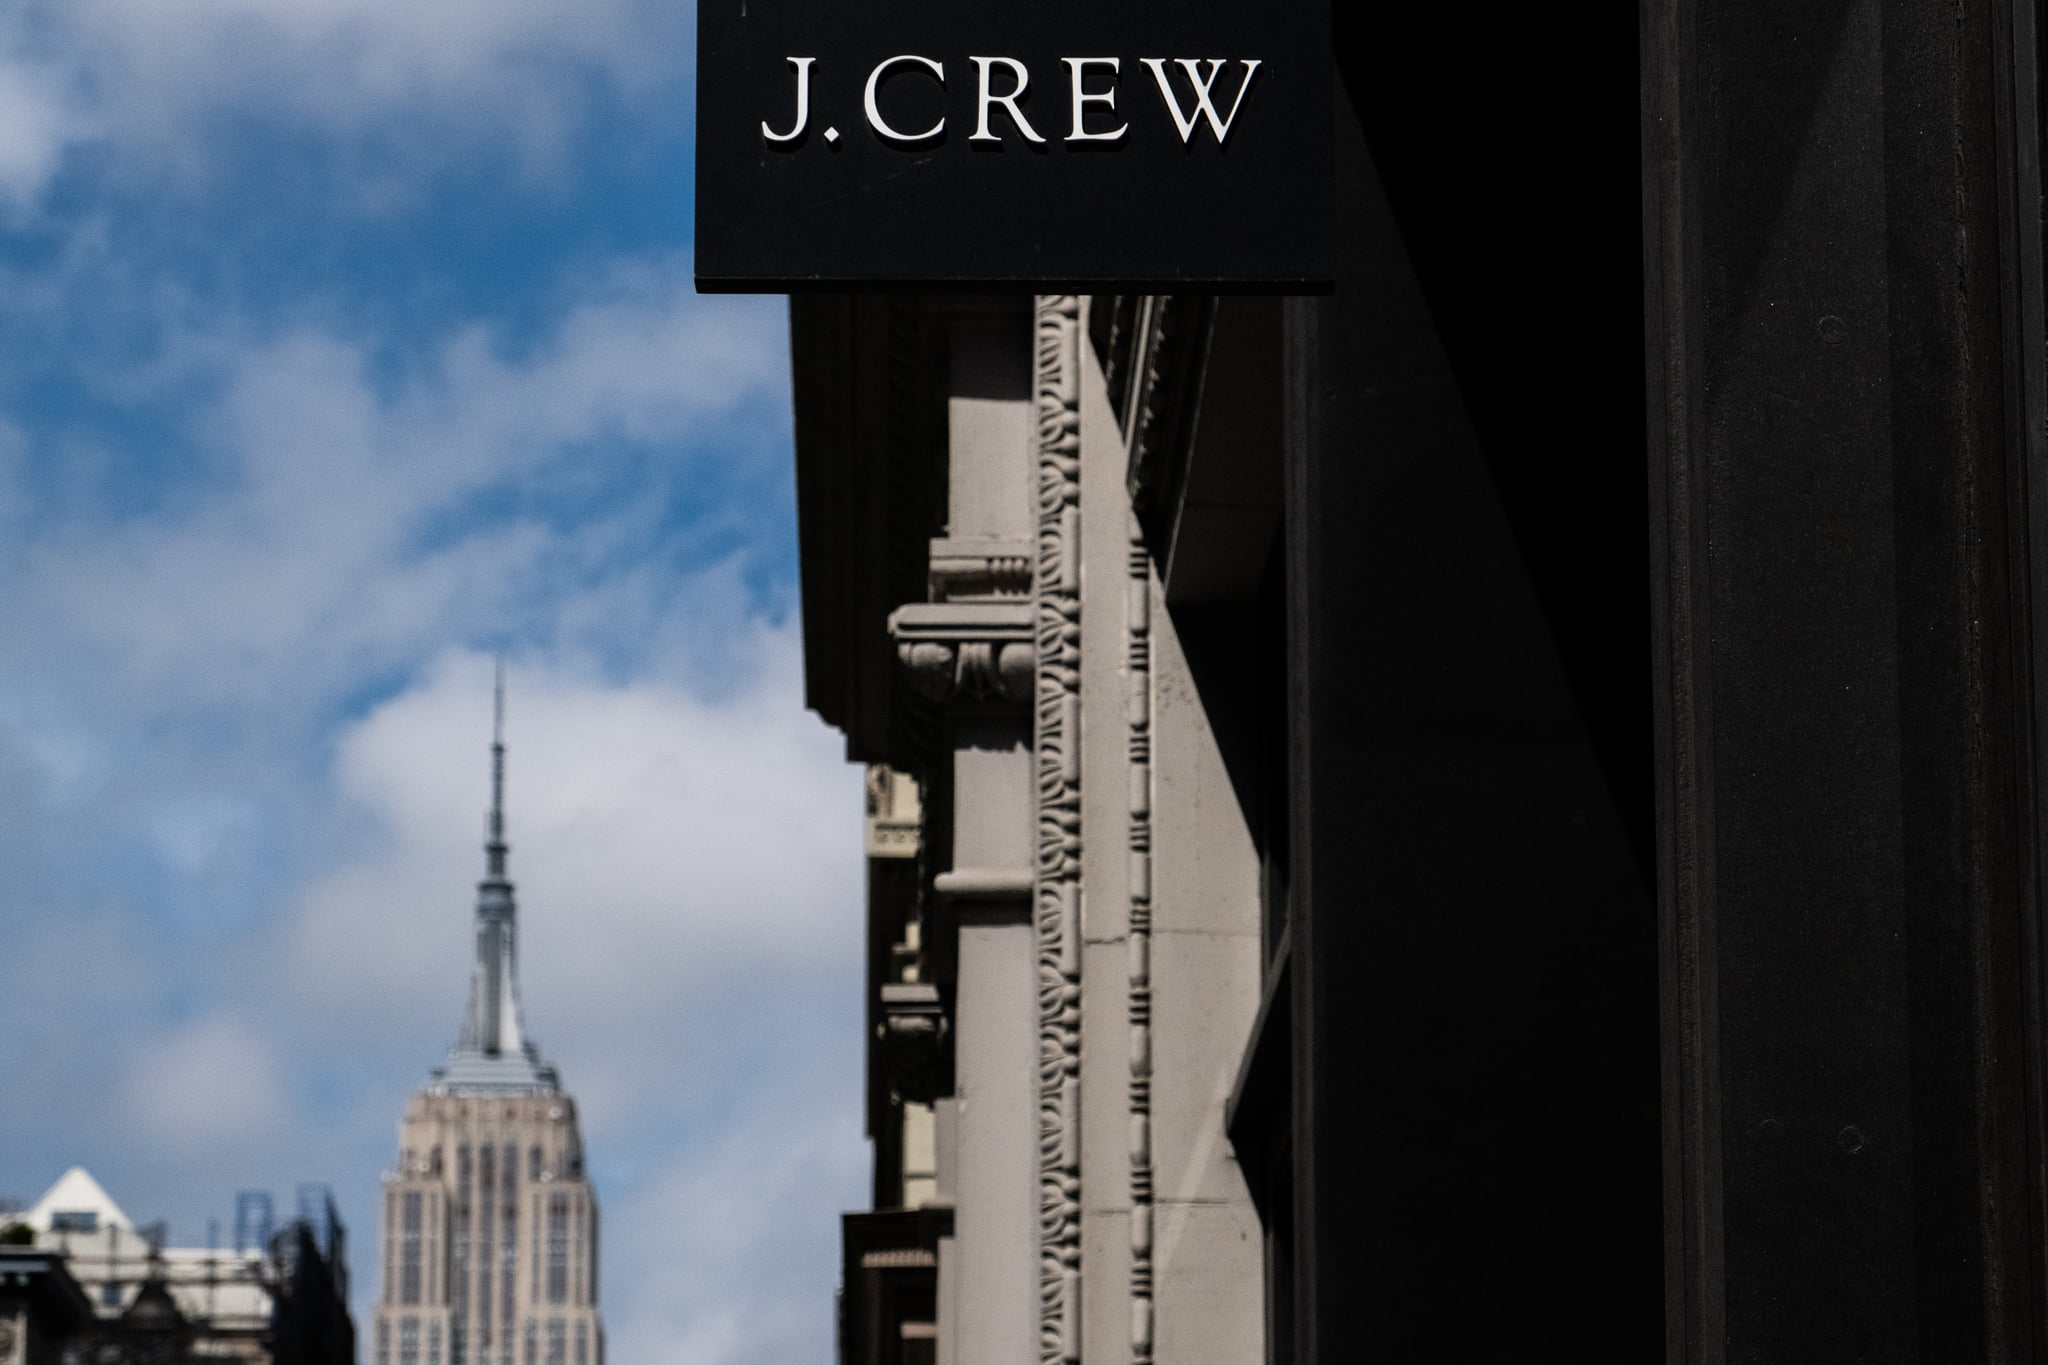 NEW YORK, NY - MAY 01: J. Crew signage  is seen on 5th Avenue on May 1, 2020 in New York City. Clothing apparel company J. Crew is preparing to file for bankruptcy protection. (Photo by Jeenah Moon/Getty Images)